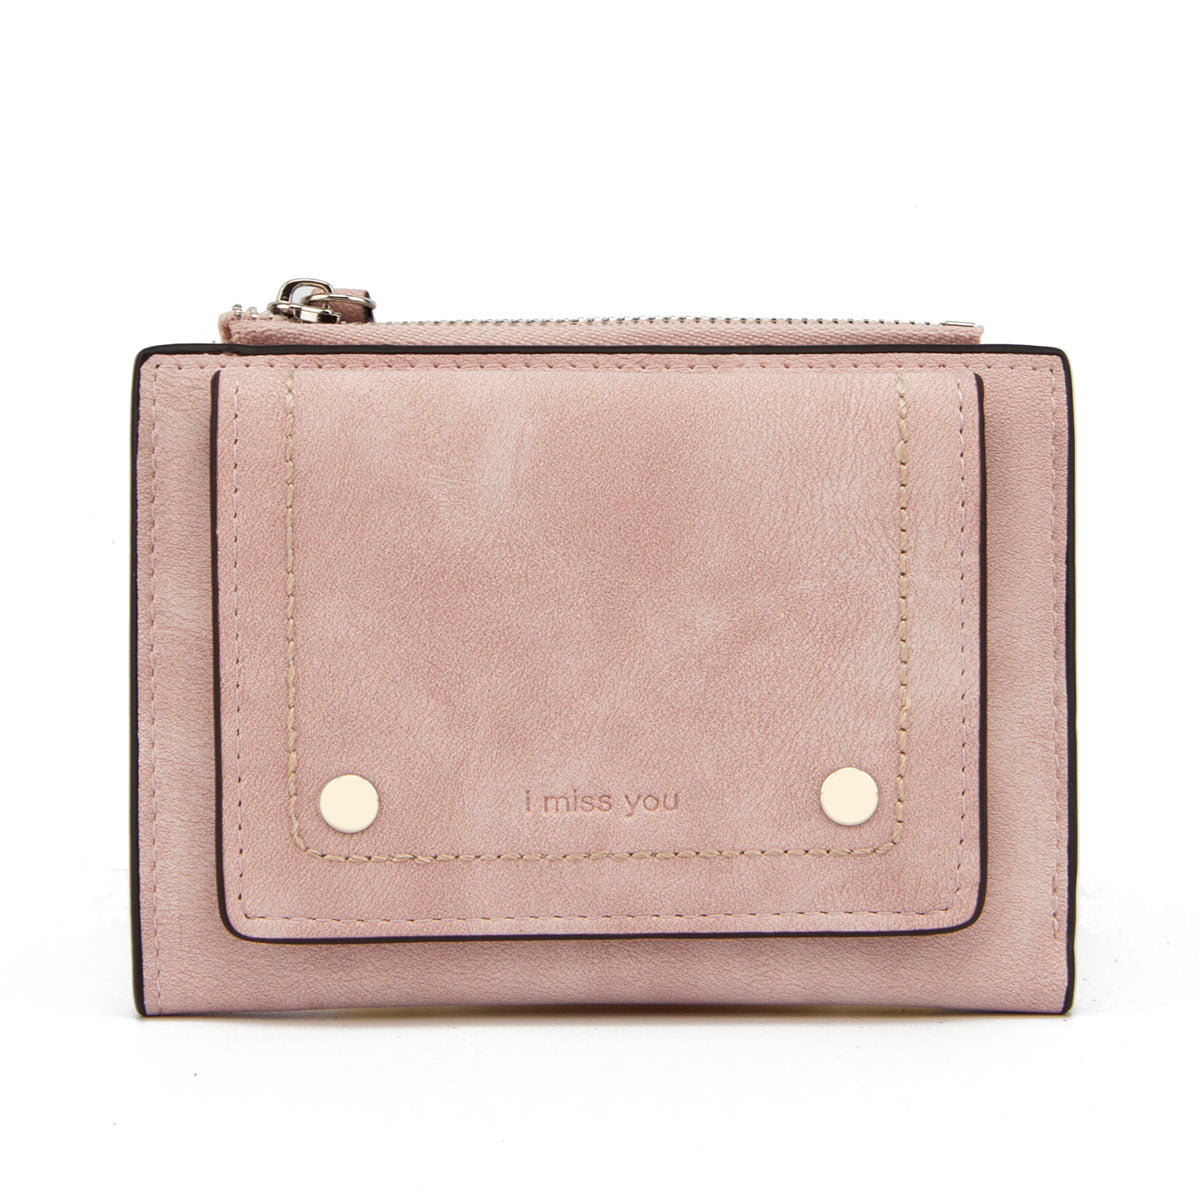 LYDC Ladies Leather Pocket Friendly Wallet